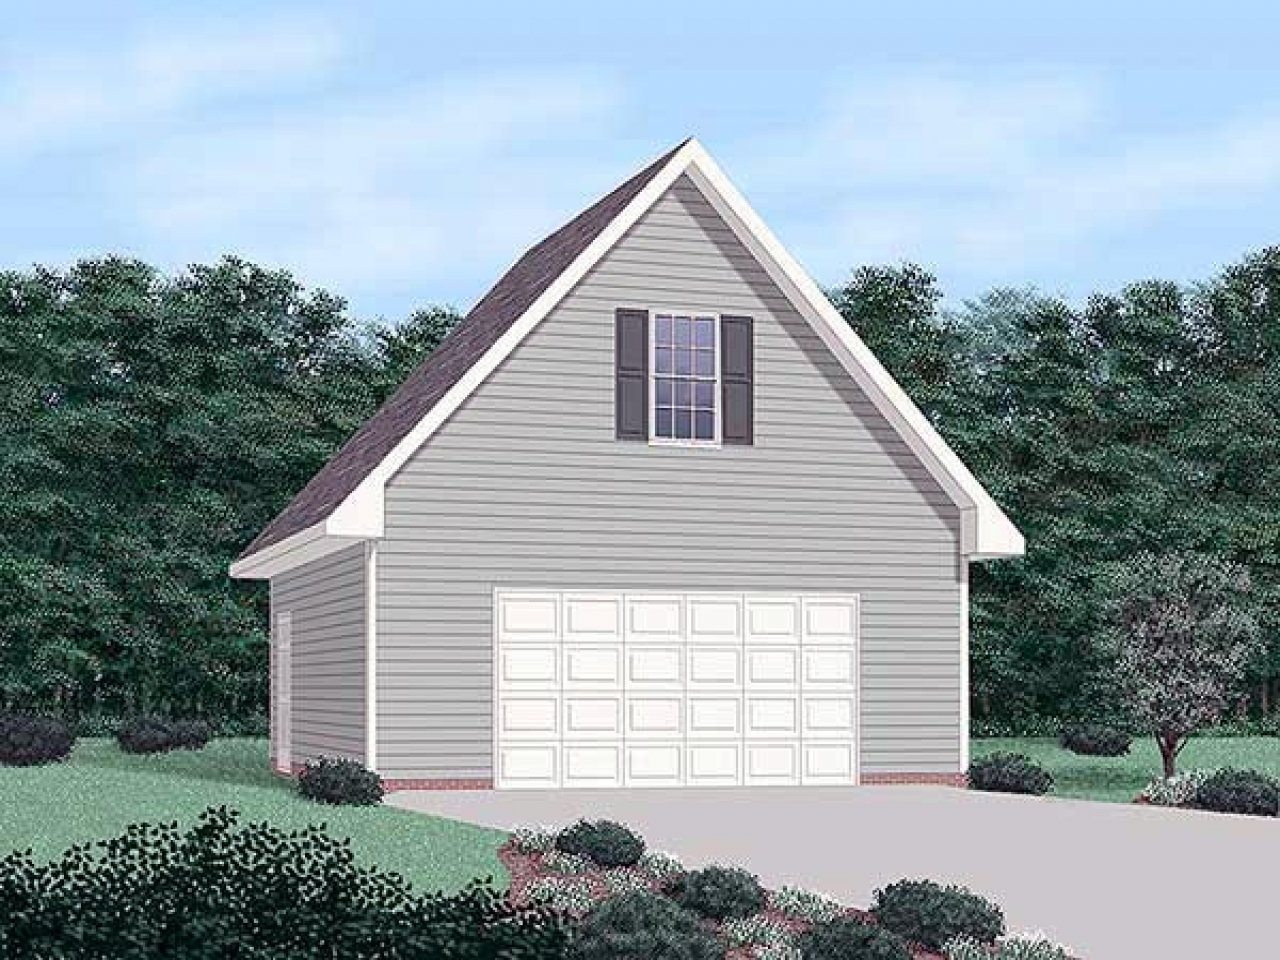 Custom garages with living quarters custom garage plans for Custom garages with living quarters